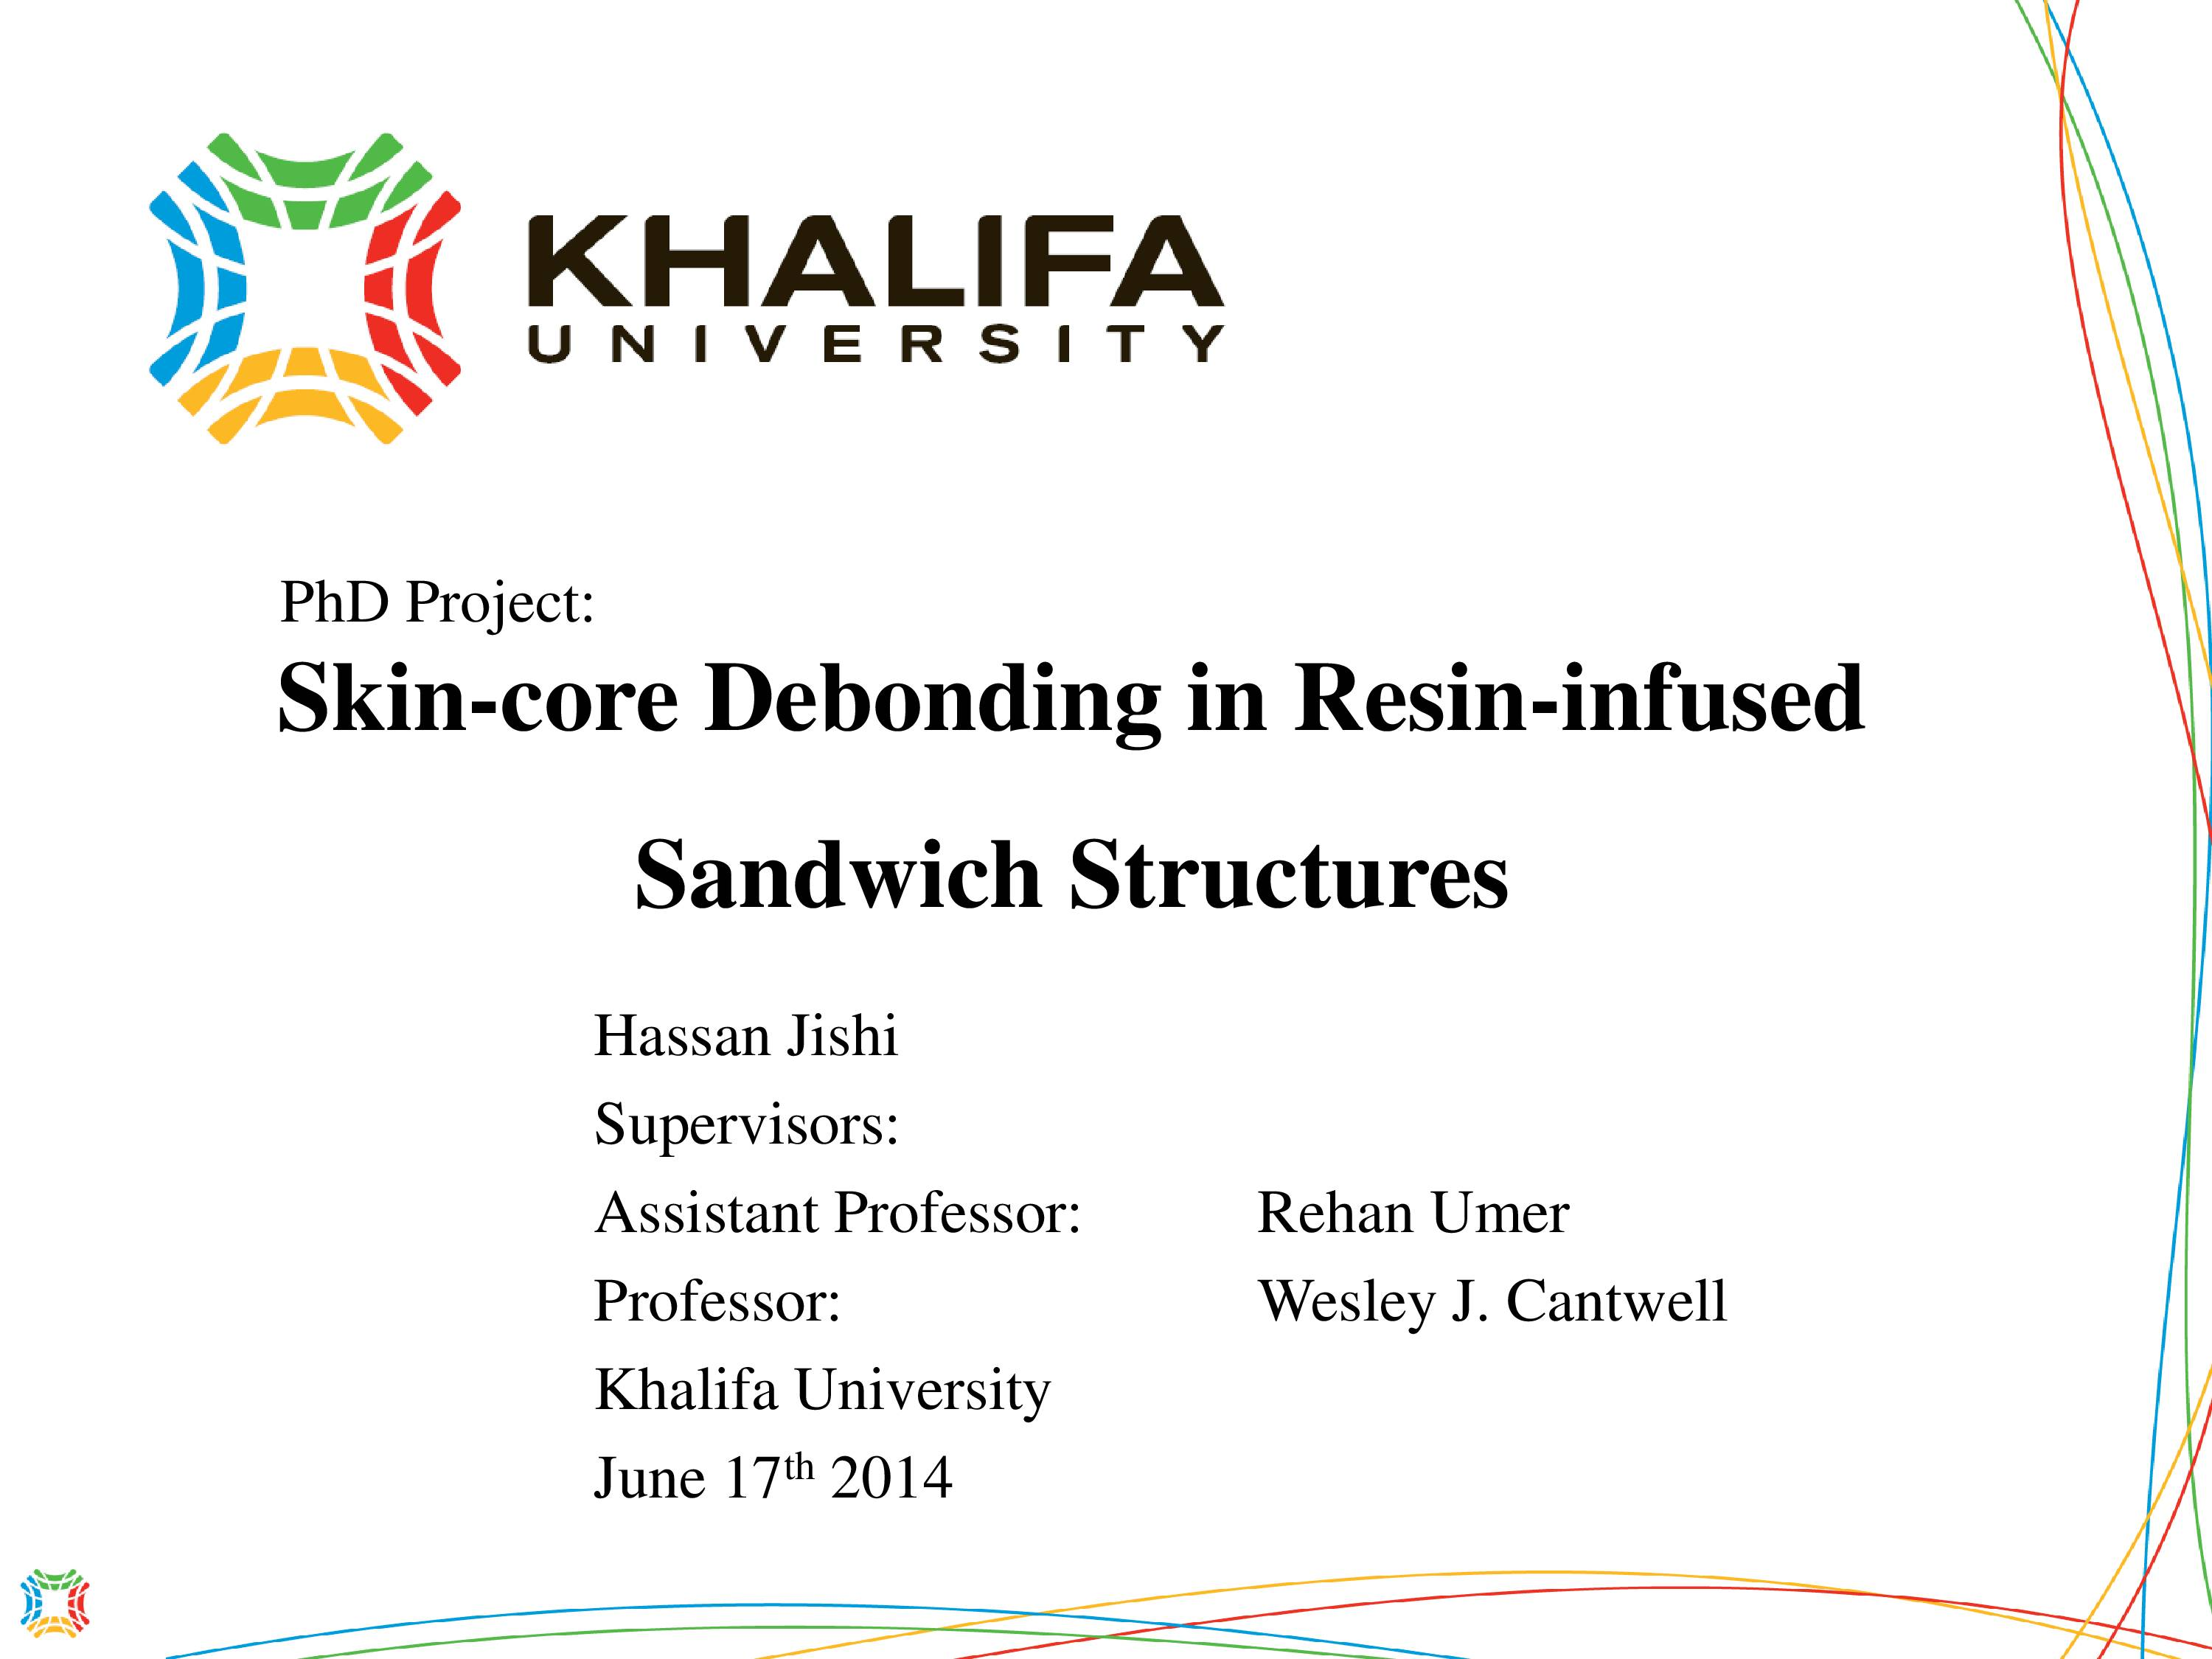 Skin-core Debonding in Resin-infused Sandwich Structures